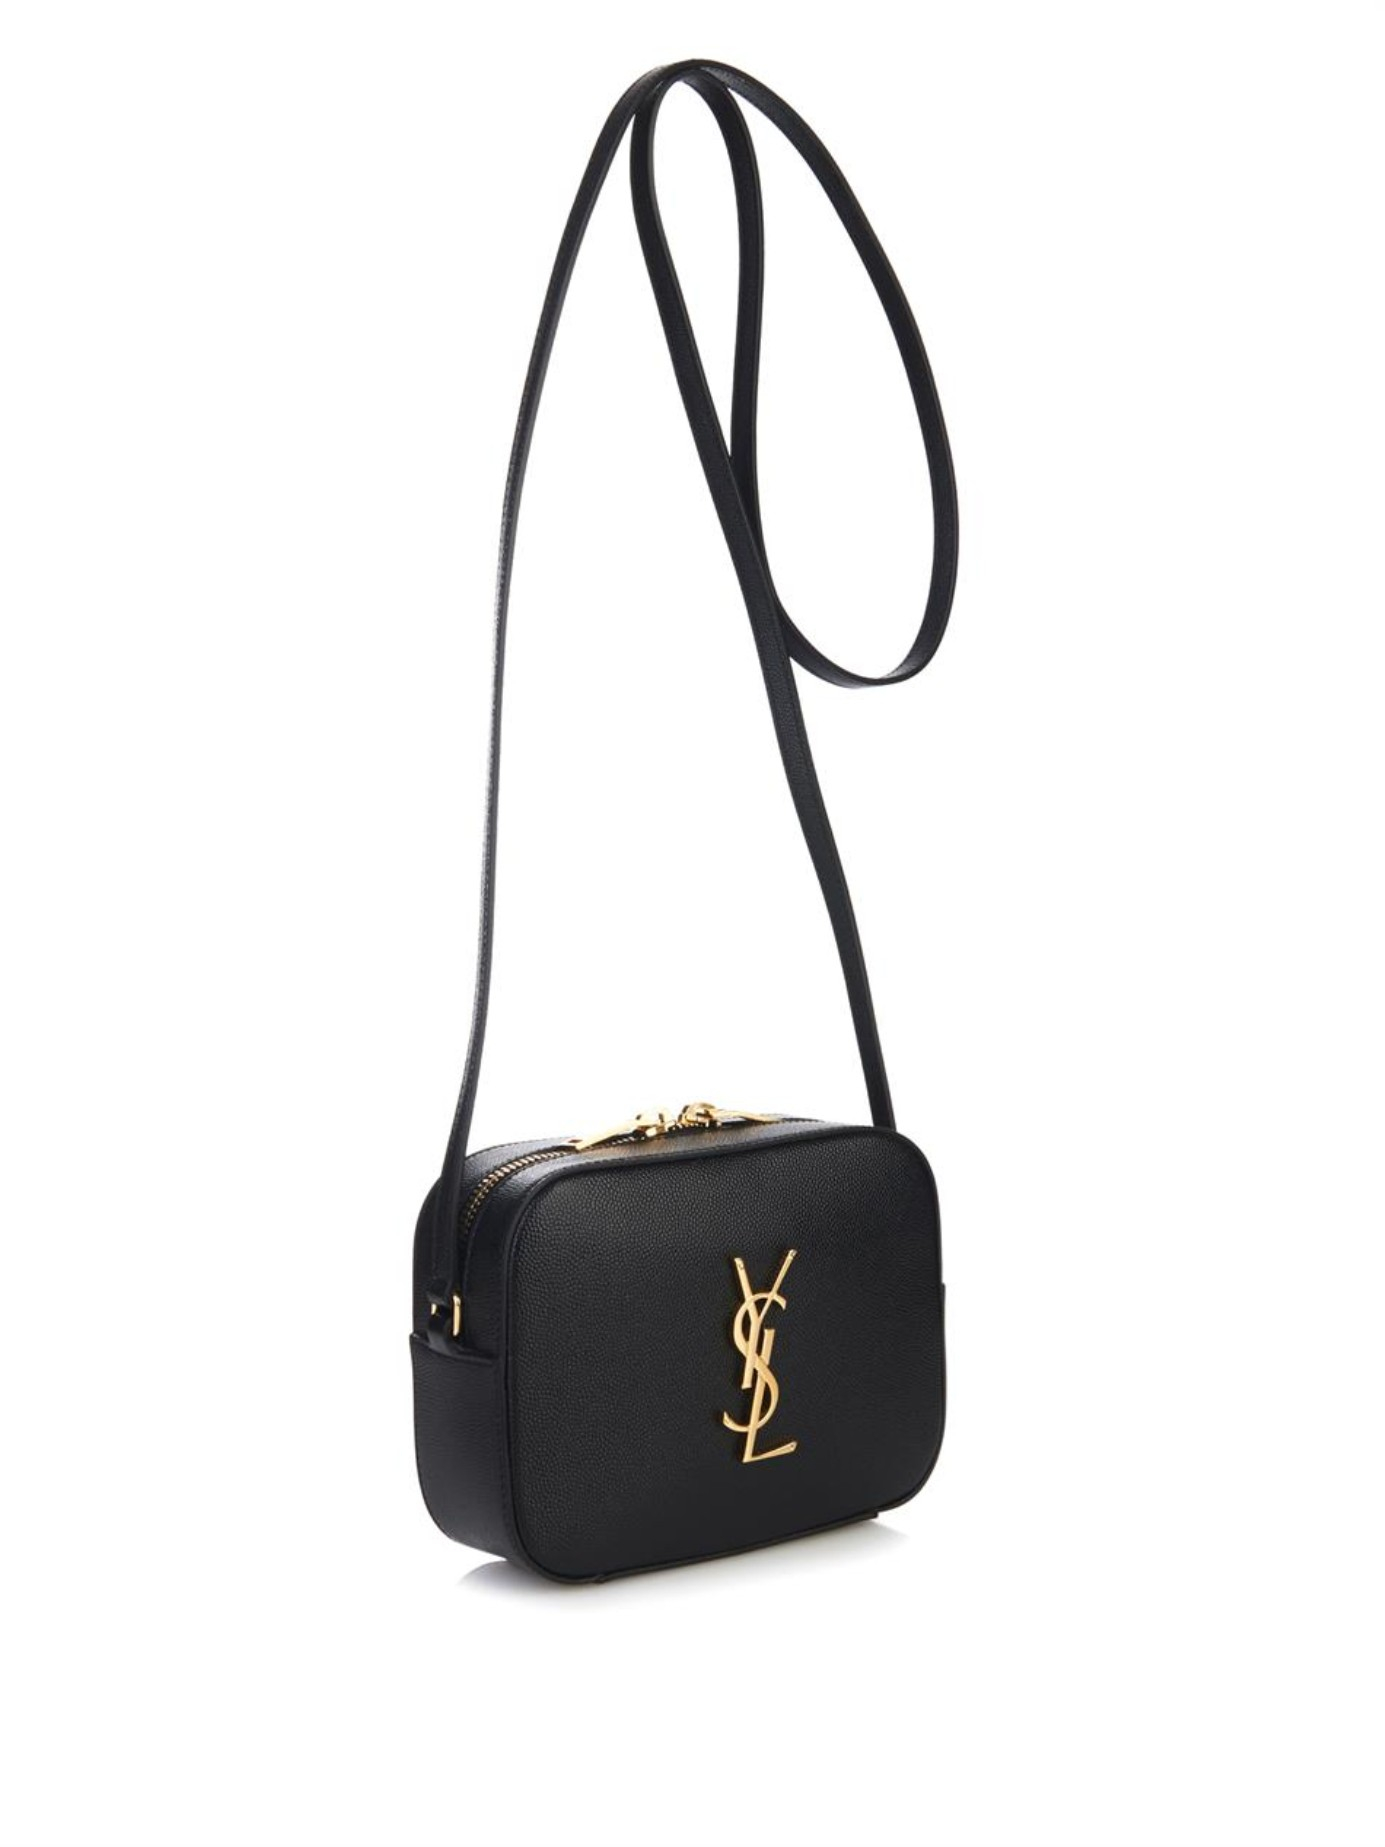 cd88dc5aab35 Saint Laurent Monogram Camera Leather Cross-Body Bag in Black - Lyst